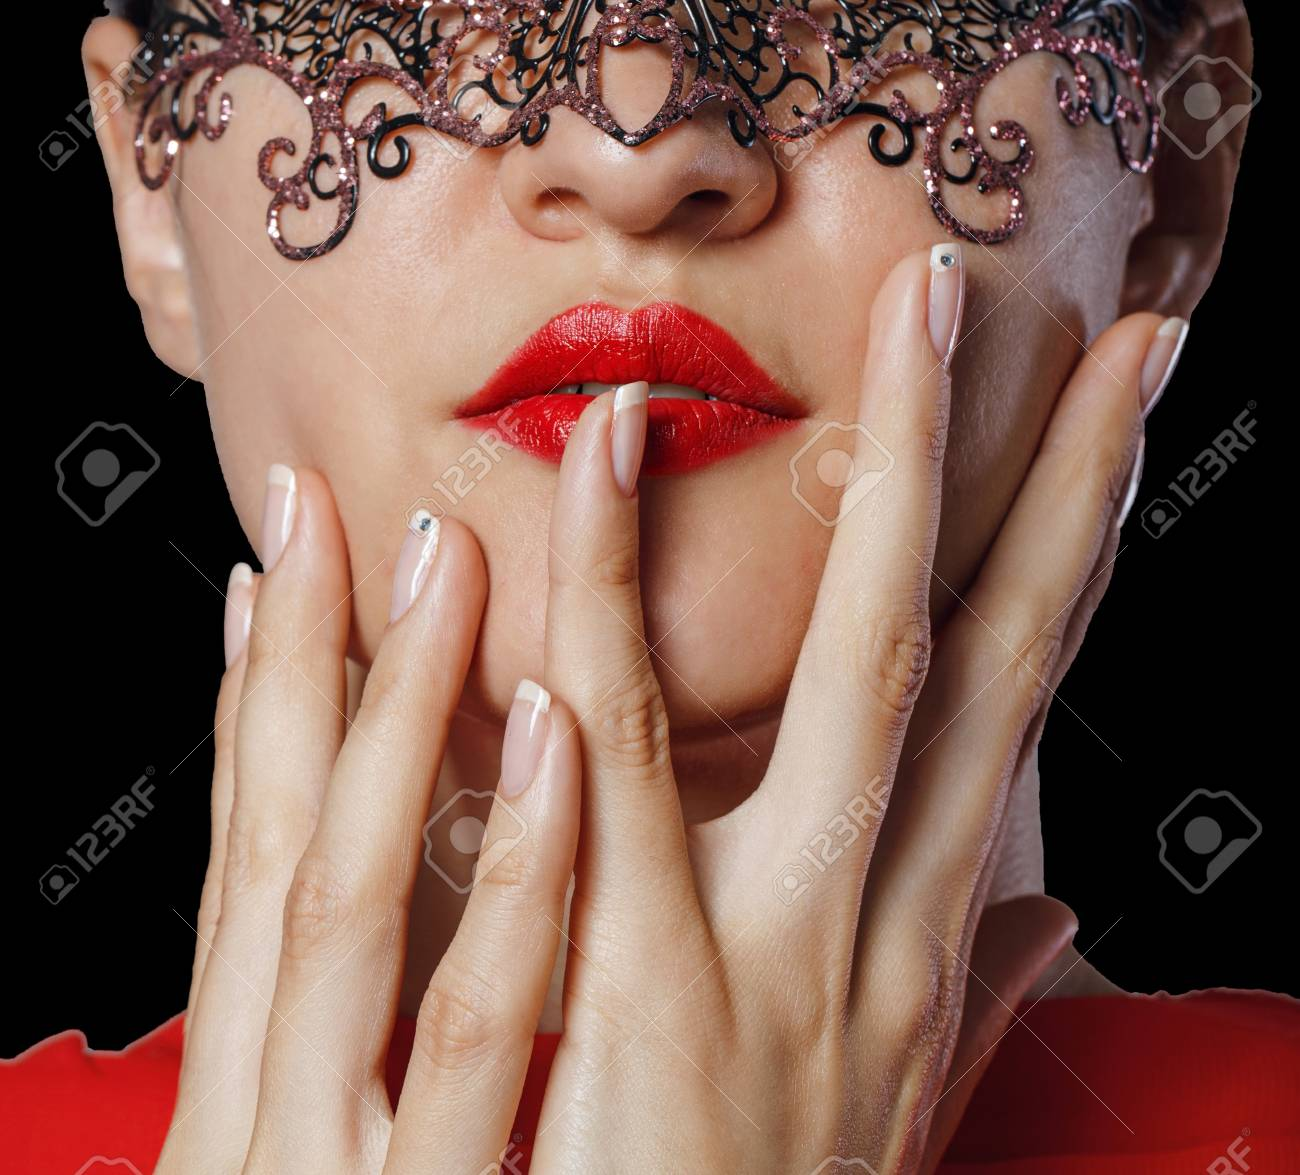 Girl in a Venetian masquerade mask isolated on a black background Stock Photo - 21305199